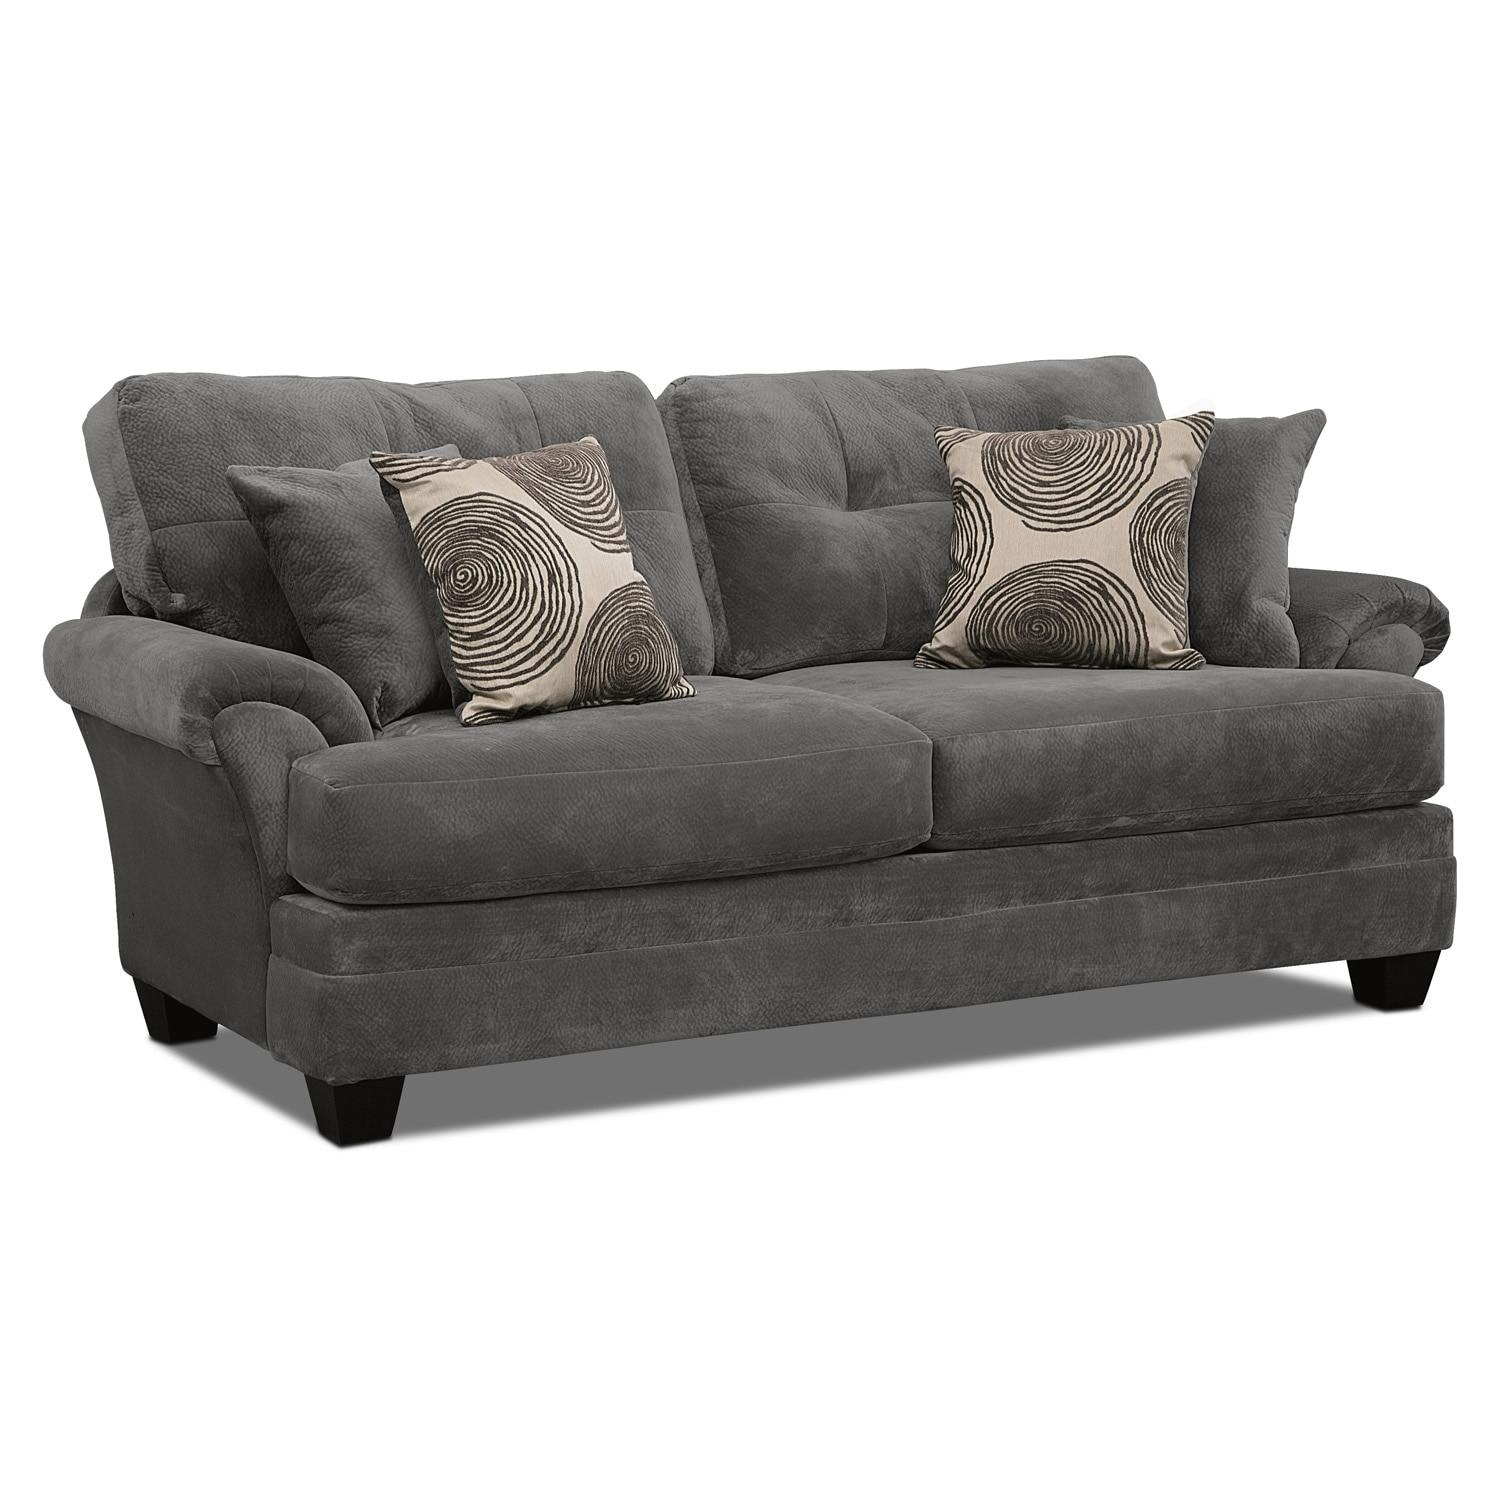 Cordelle Sofa, Loveseat And Swivel Chair Set – Gray | Value City Pertaining To Swivel Sofa Chairs (View 17 of 20)